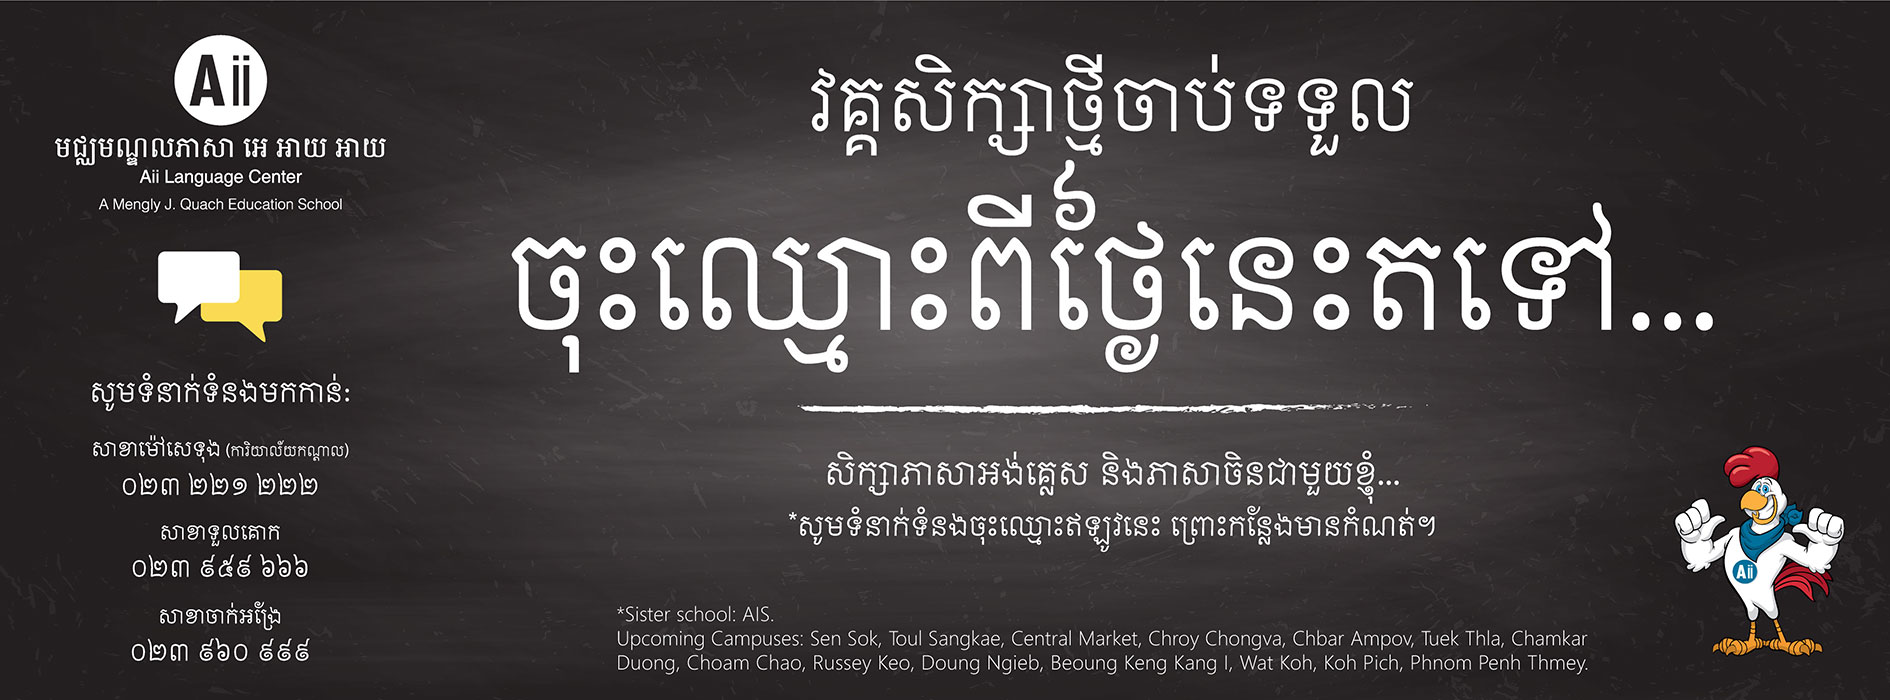 Aii-New-Term-58-Facebook-Cover_Delete-Date_Khmer